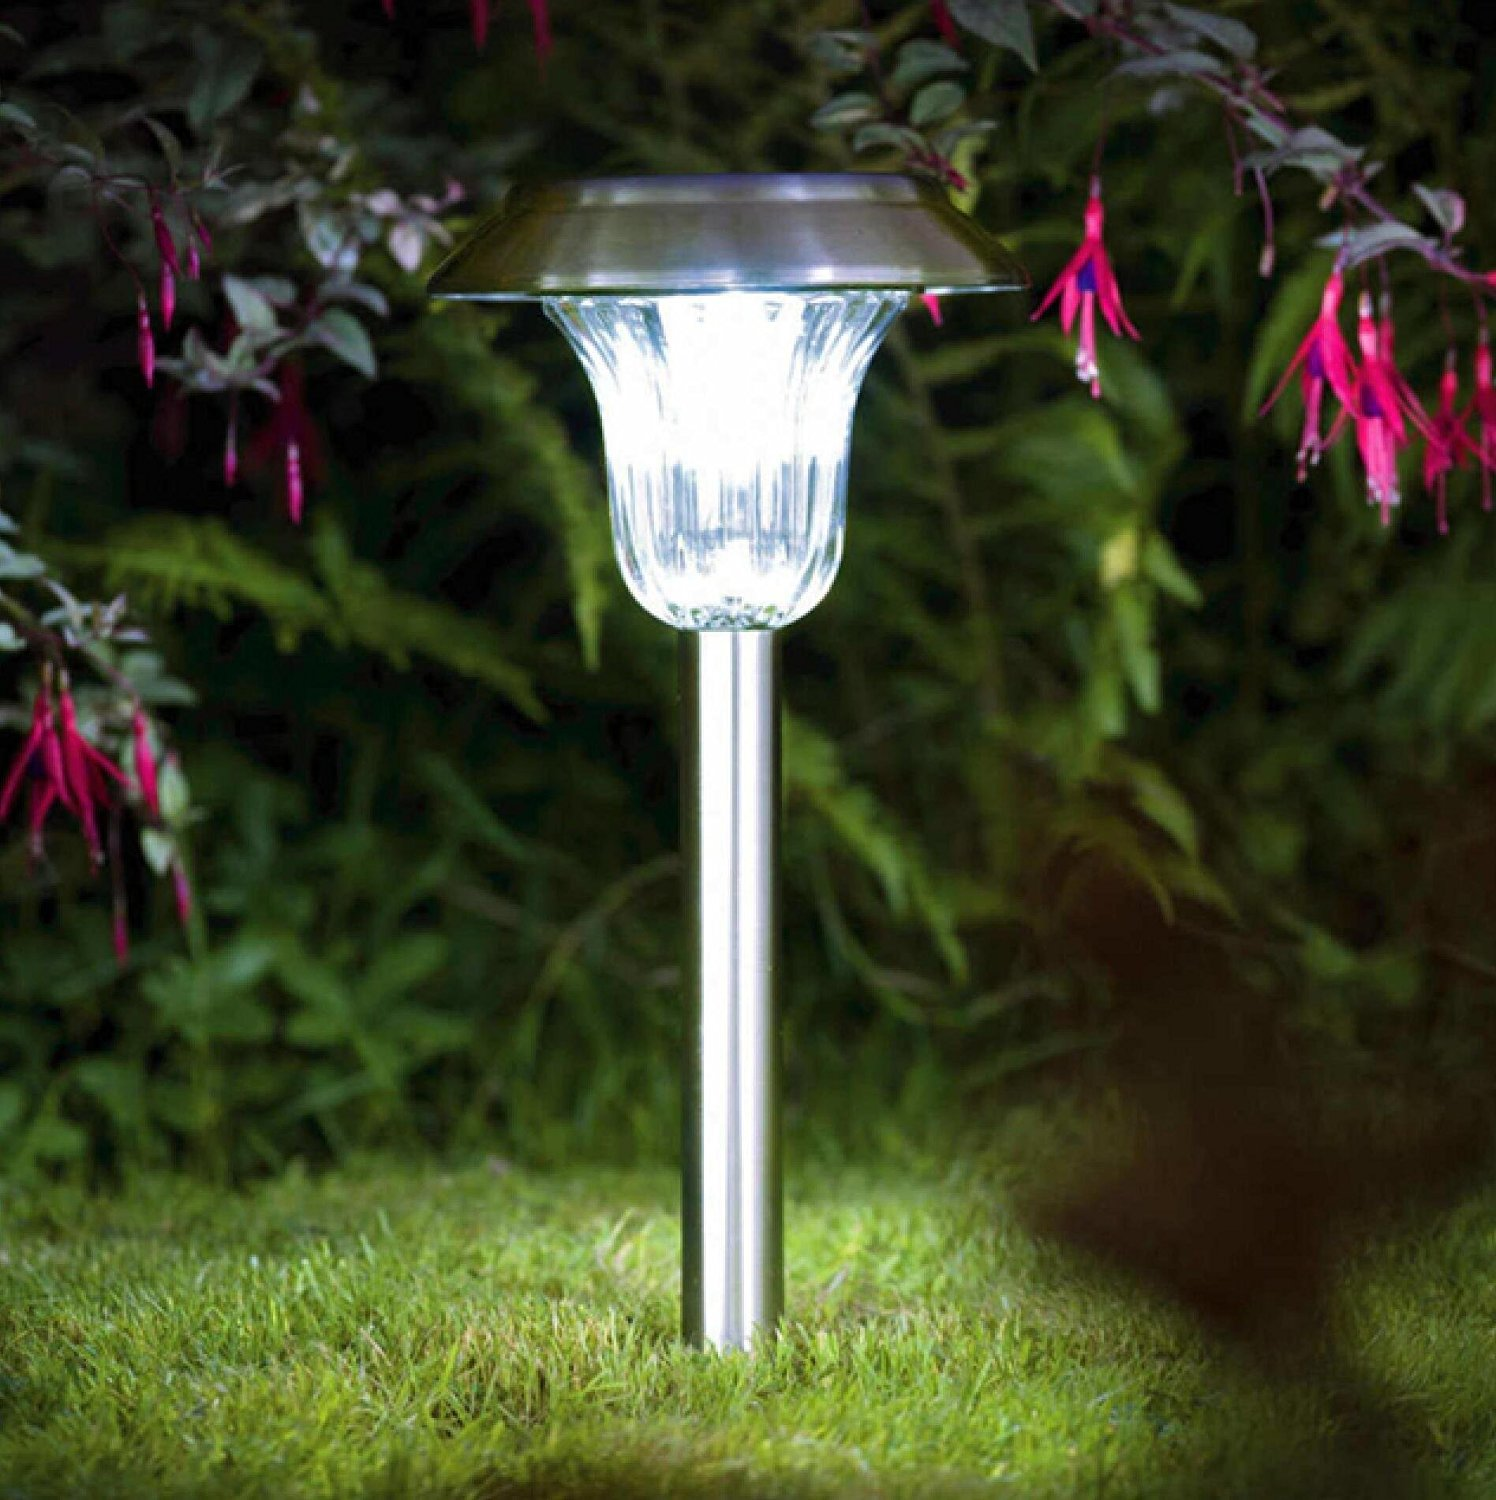 Beau Sogrand 4pcs,Solar Lights Outdoor,Dual Color White Blue LED Stainless Steel, Solar